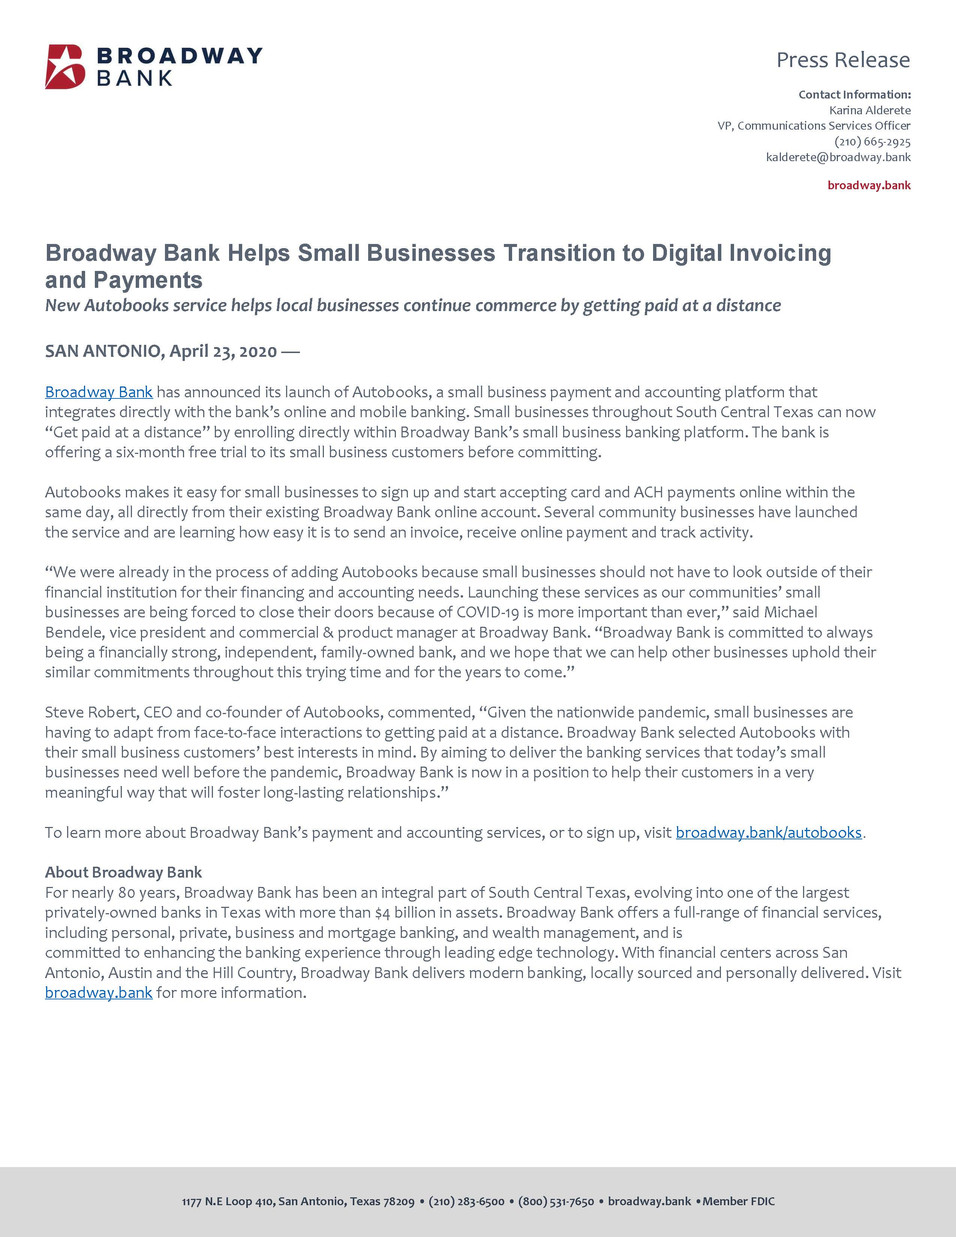 Broadway Bank Launches Autobooks